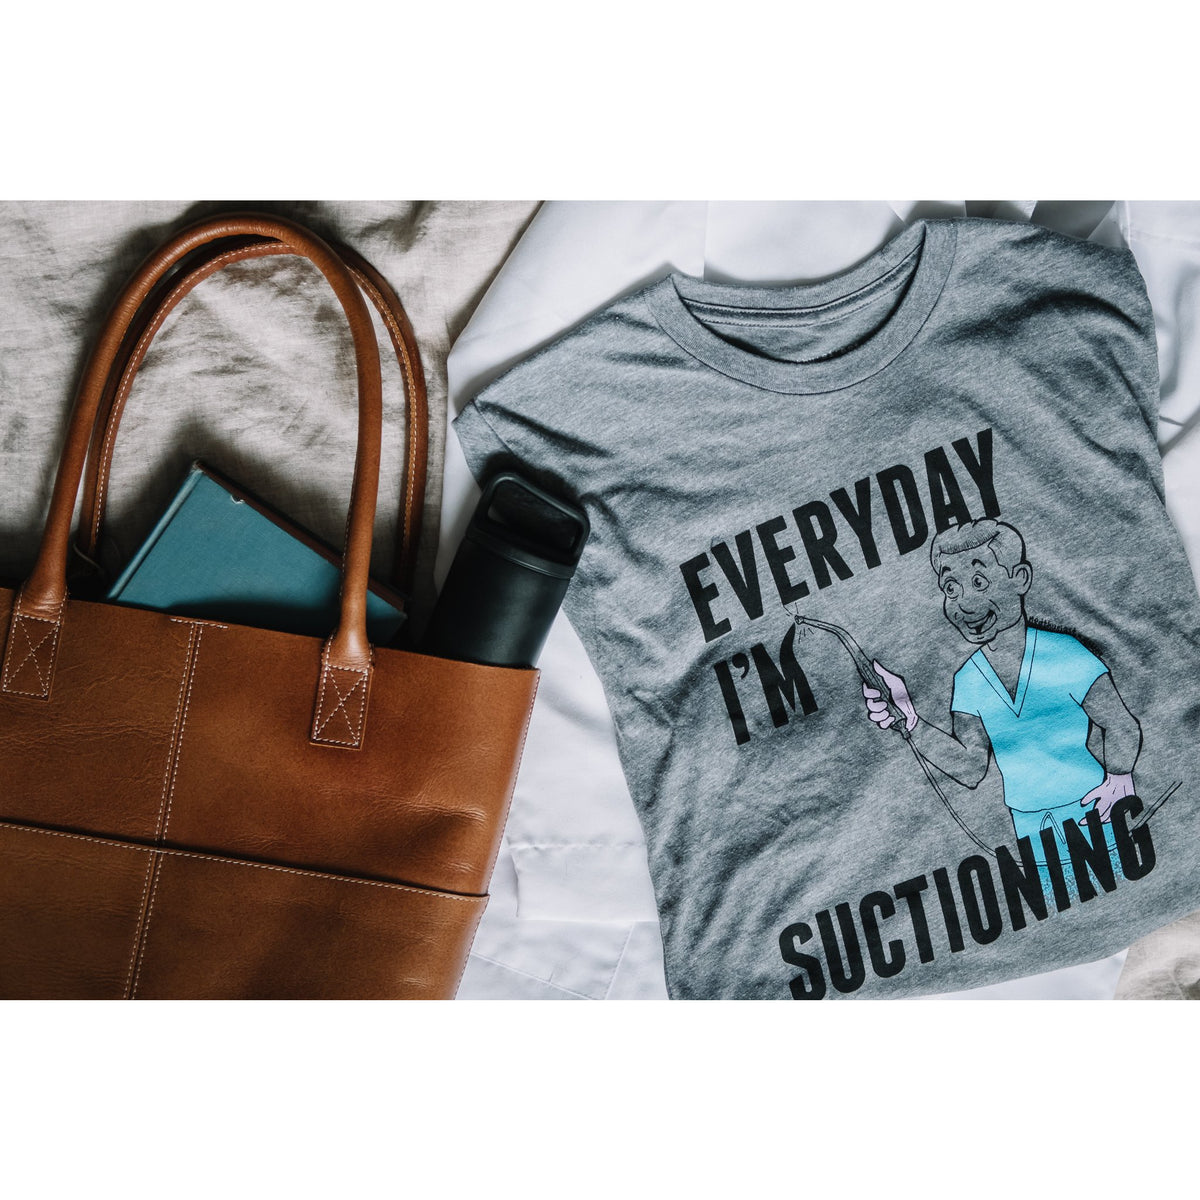 Everyday I'm Suctioning Tee - FINAL SALE